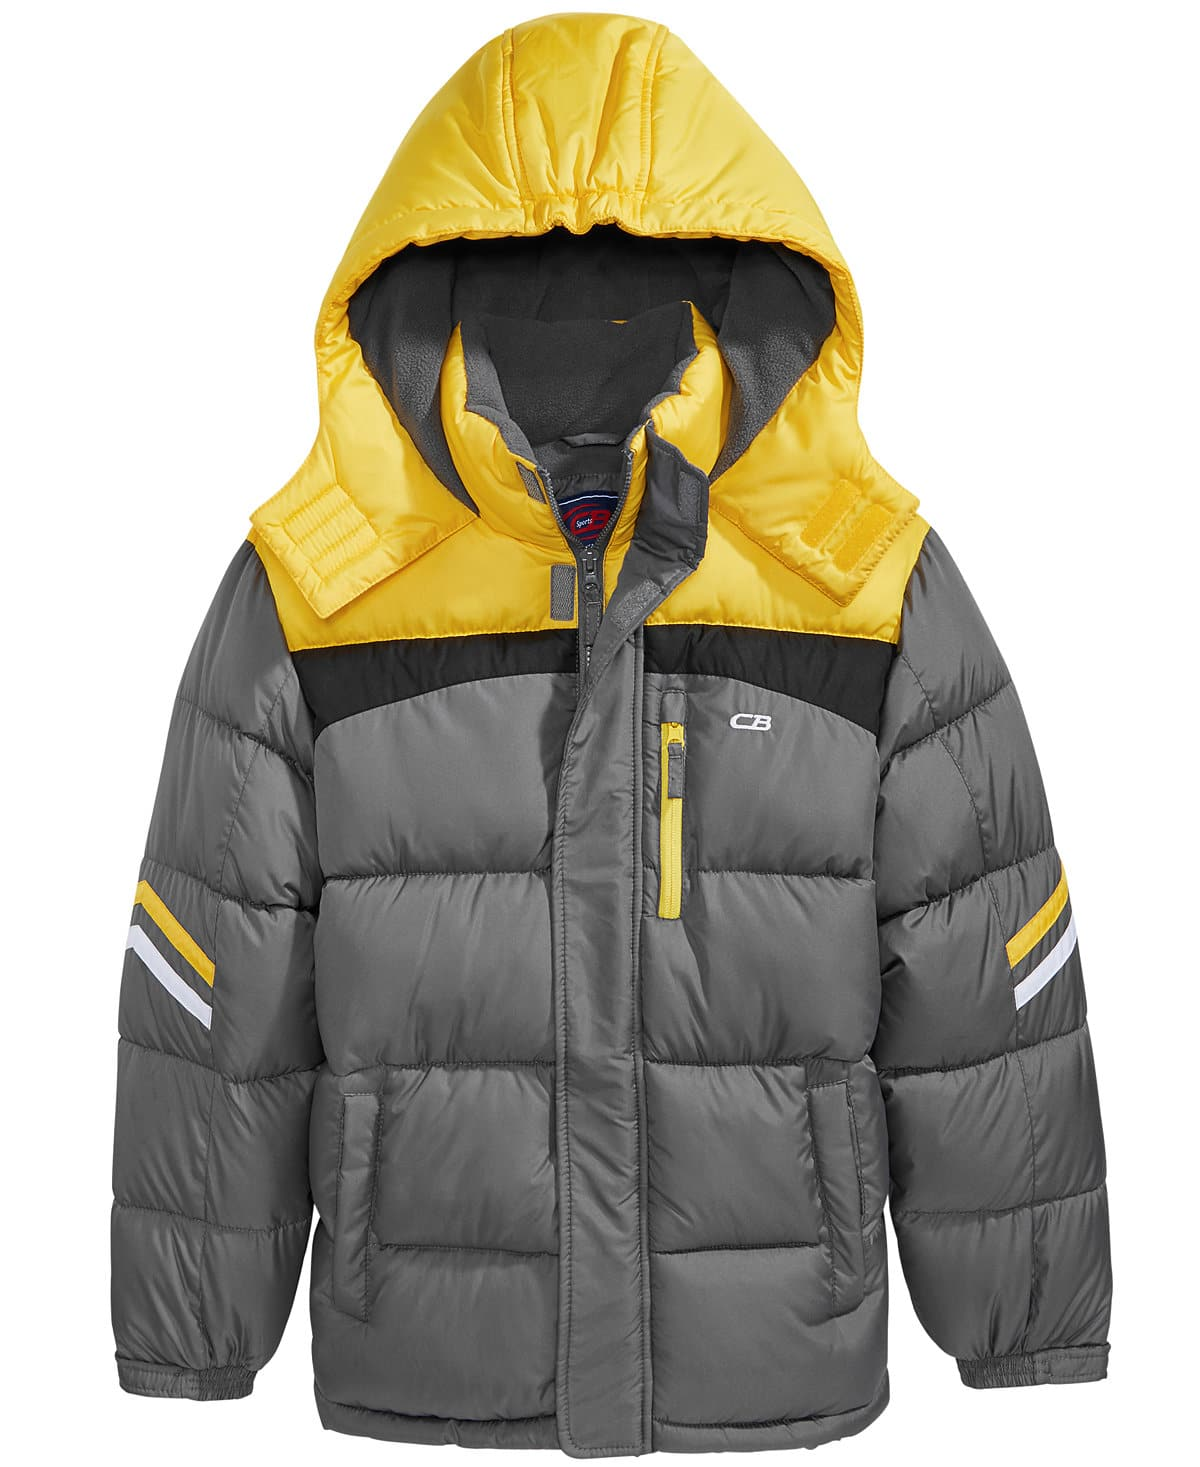 CB Sports Hooded Puffer Coats, Big & Little Boys $15.99 + Free  Store Pickup